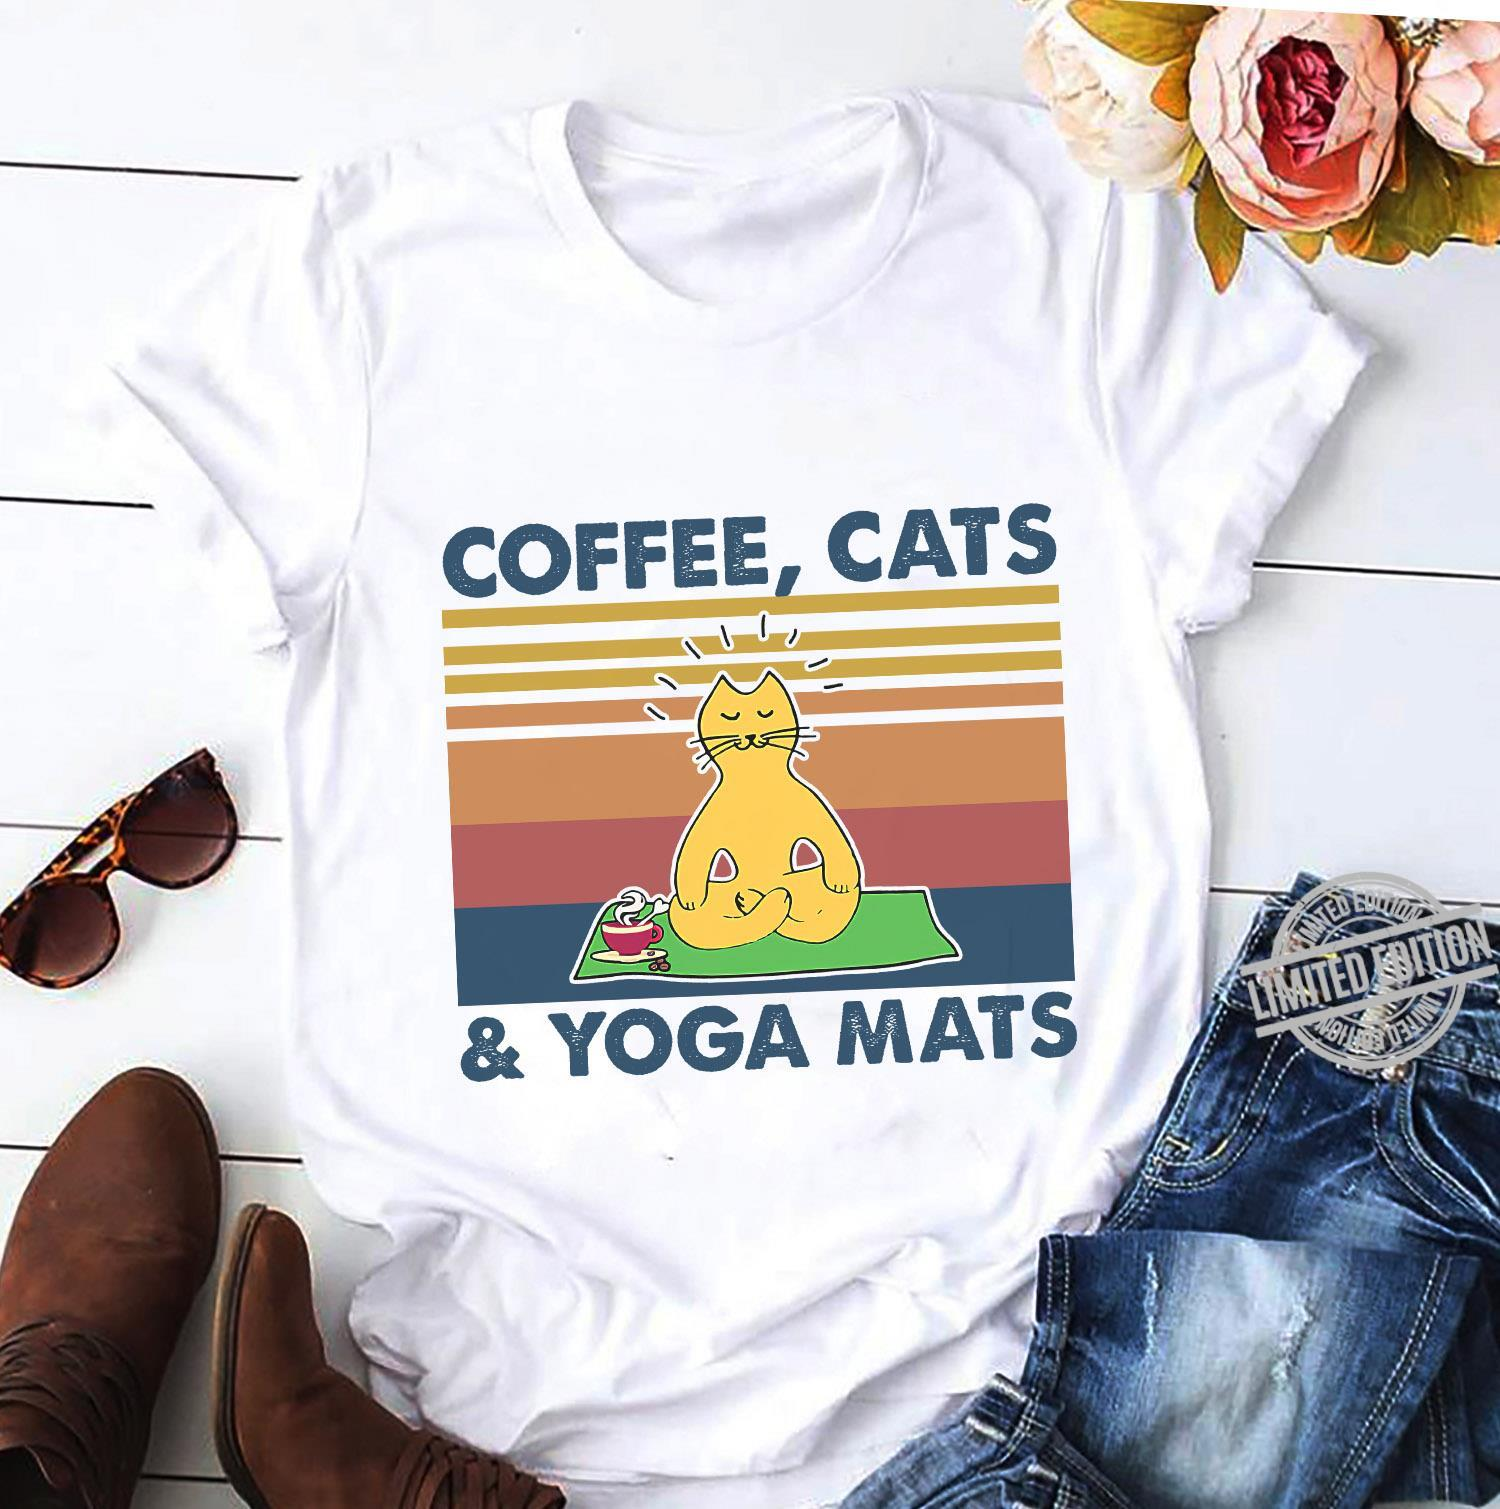 Coffee Cats & Yoaga Mats Shirt